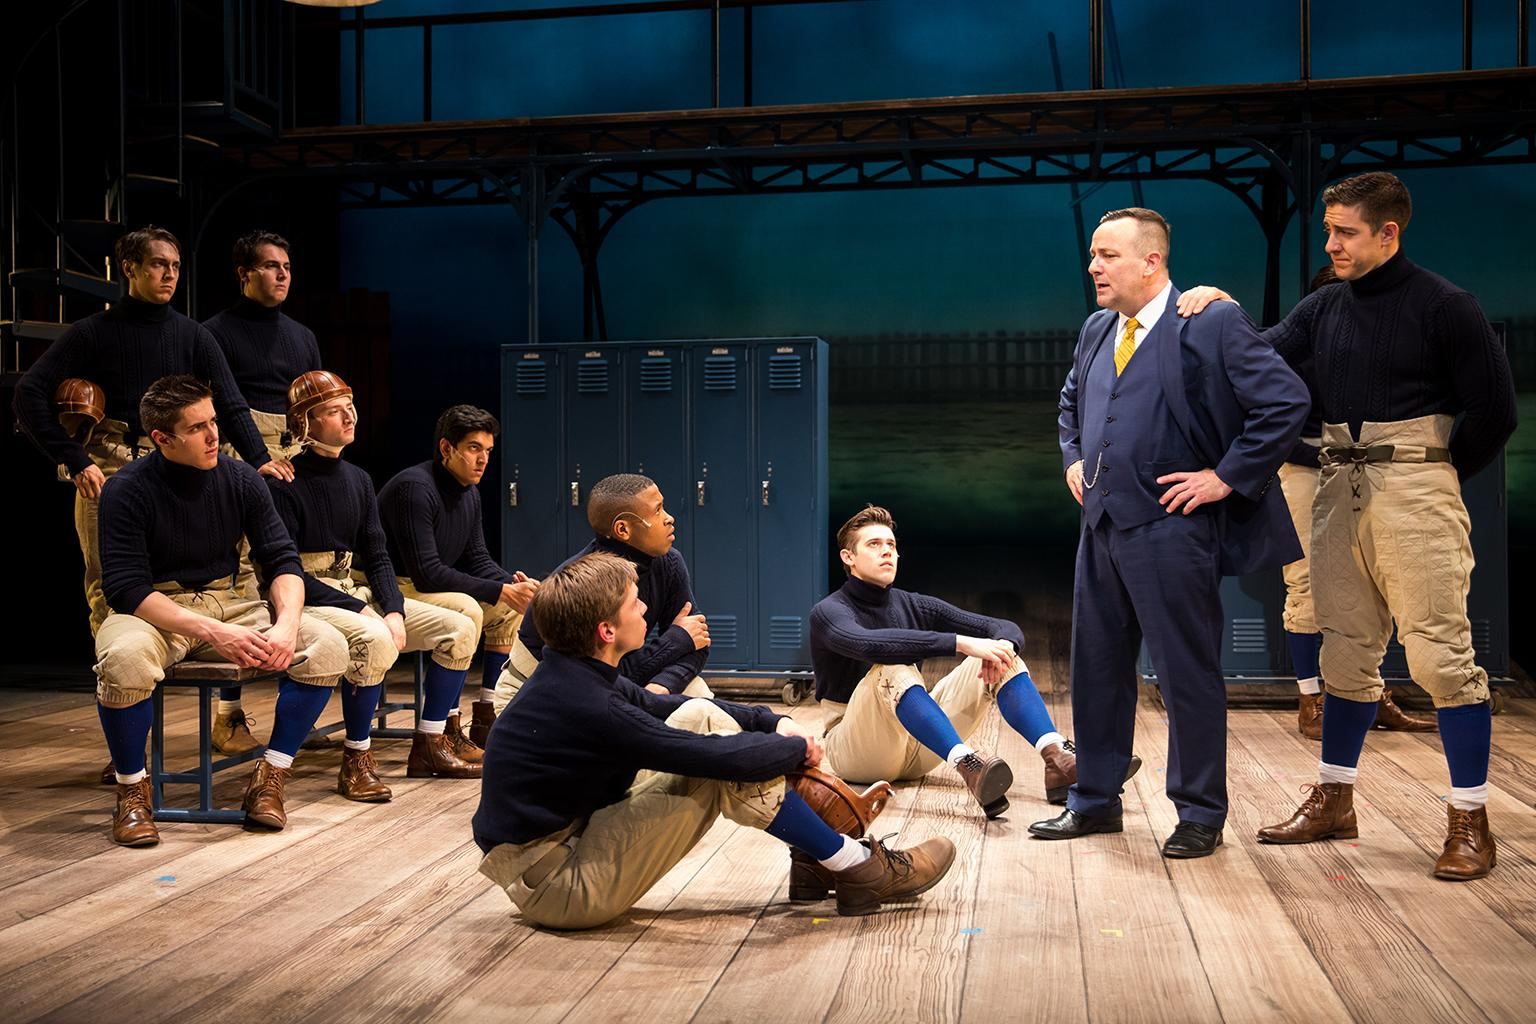 Knute Rockne (Stef Tovar) and George Gipp (Adrian Aguilar) give the Fighting Irish a pep talk. (Credit: Justin Barbin)